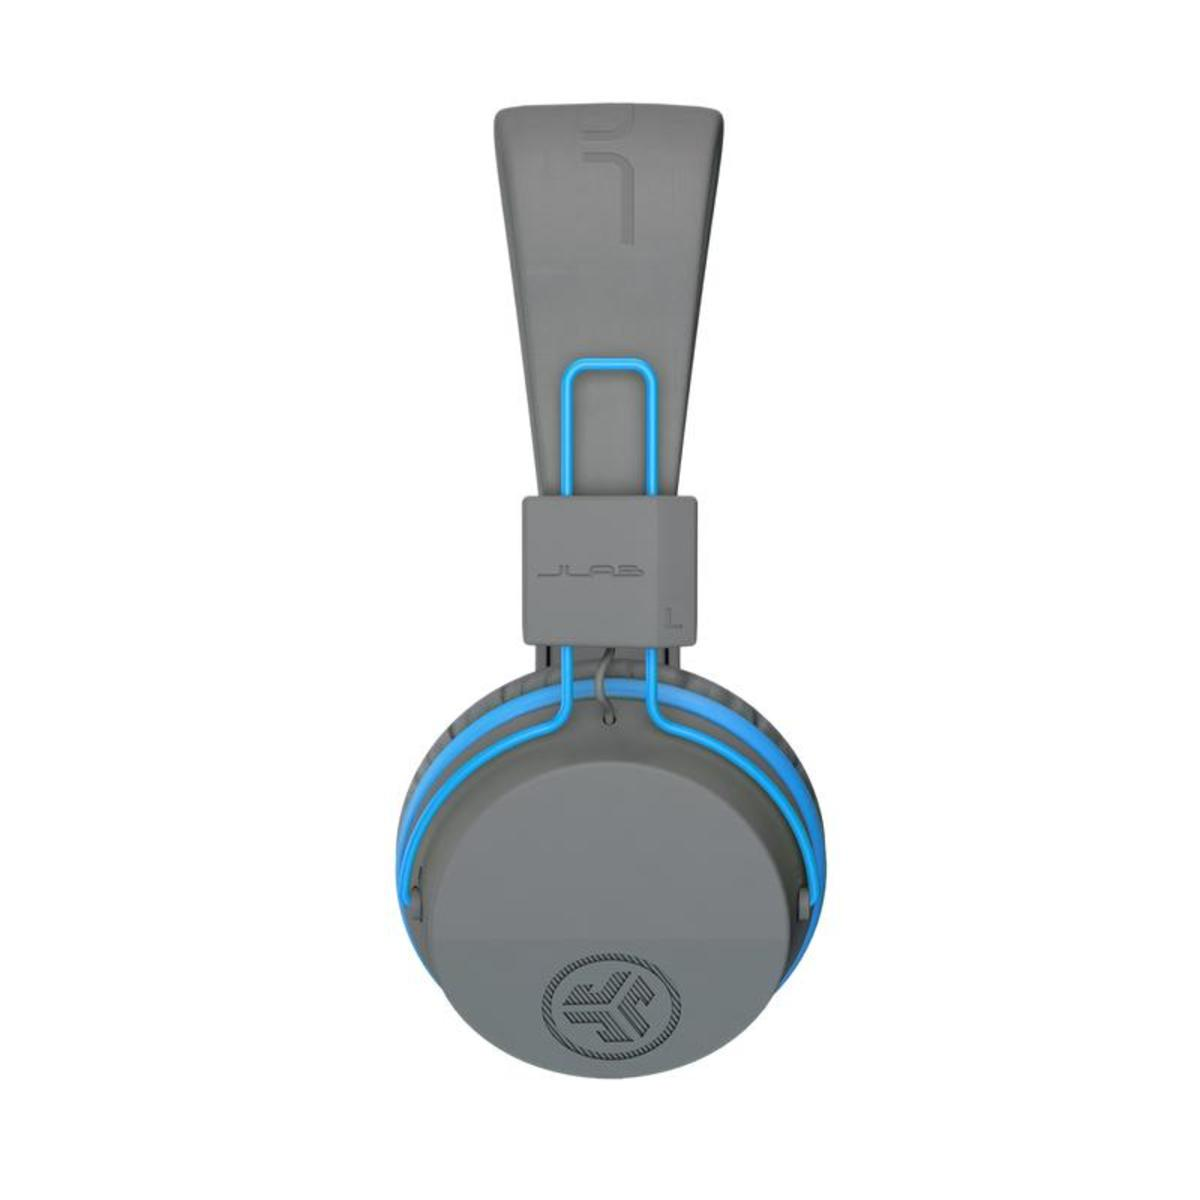 A side view of the JLab audio Bluetooth headphones.